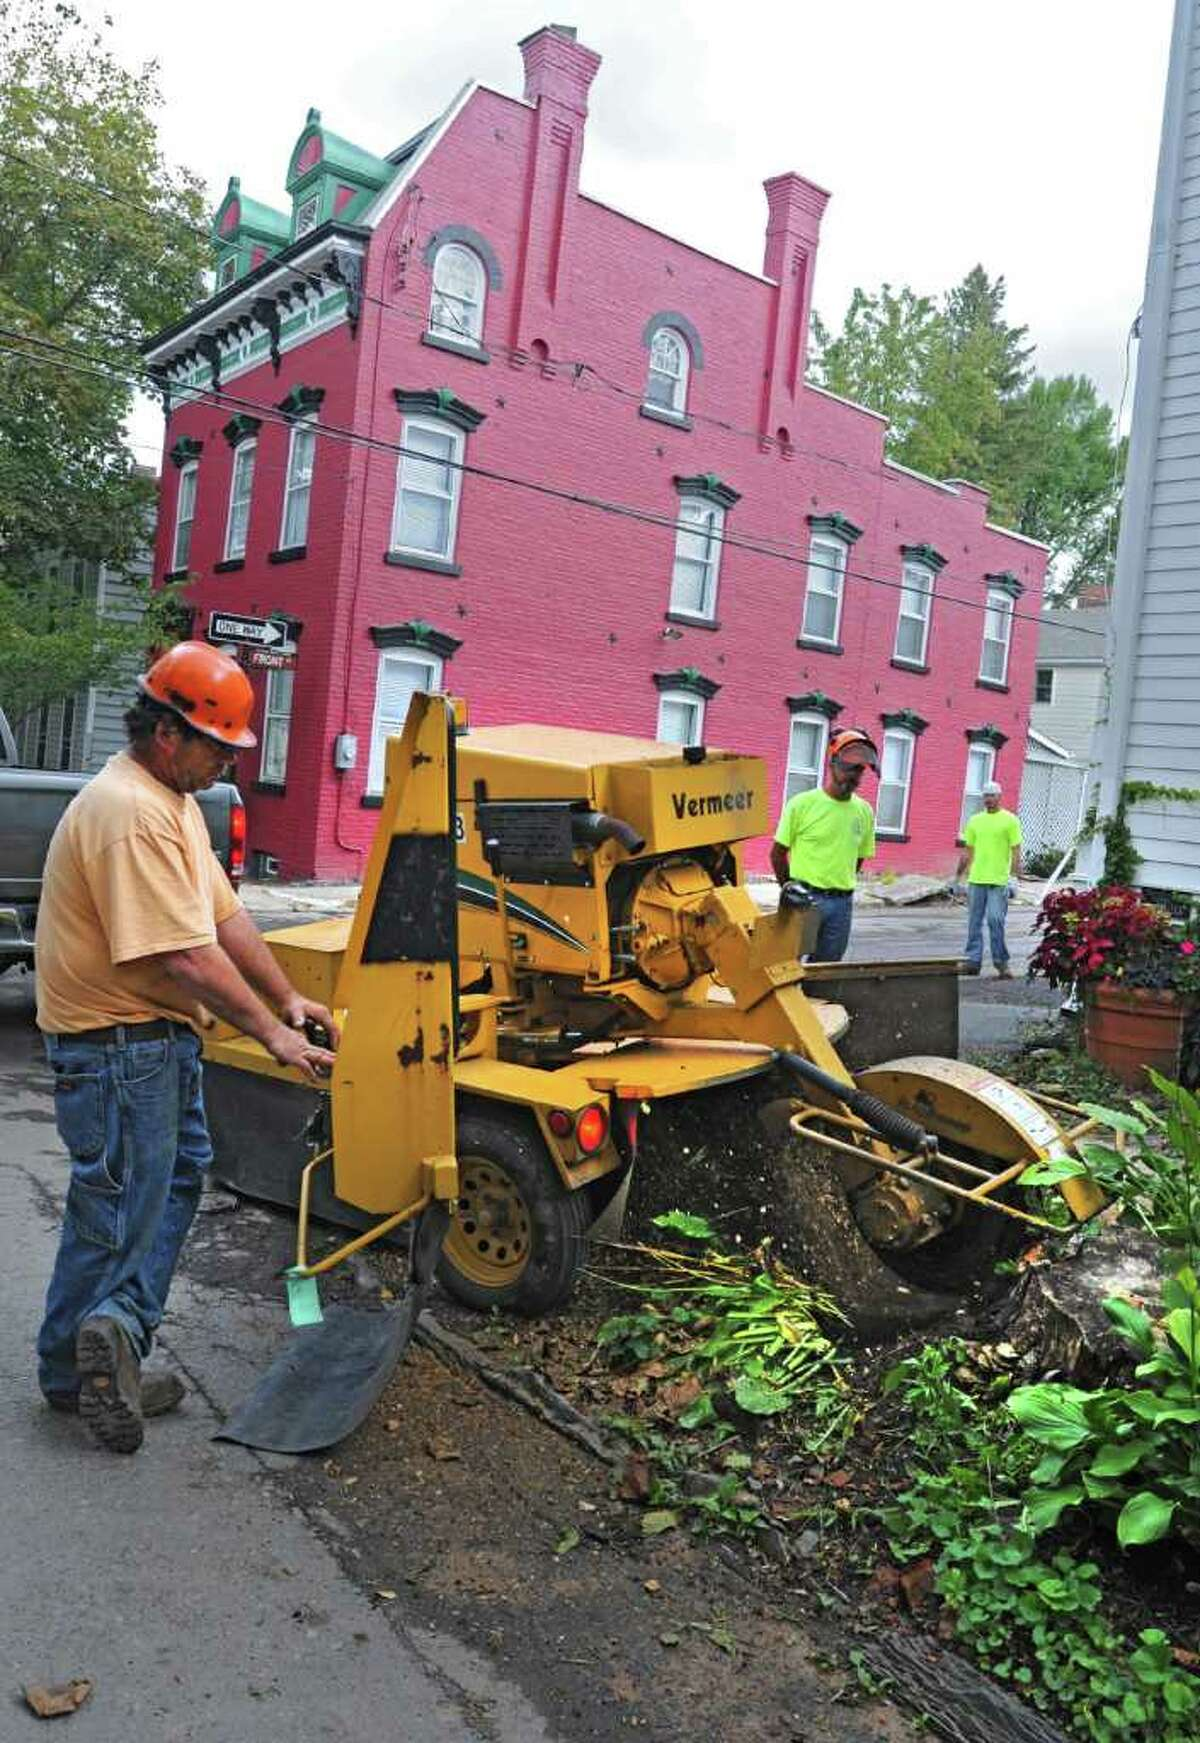 Schenectady parks workers grind down a tree stump on Washington Avenue Tuesday, Oct. 4, 2011. Parks jobs were on the chopping block in last year's budget. But the city's use of savings, or what is called fund balance, for 2012 is helping save jobs and services.